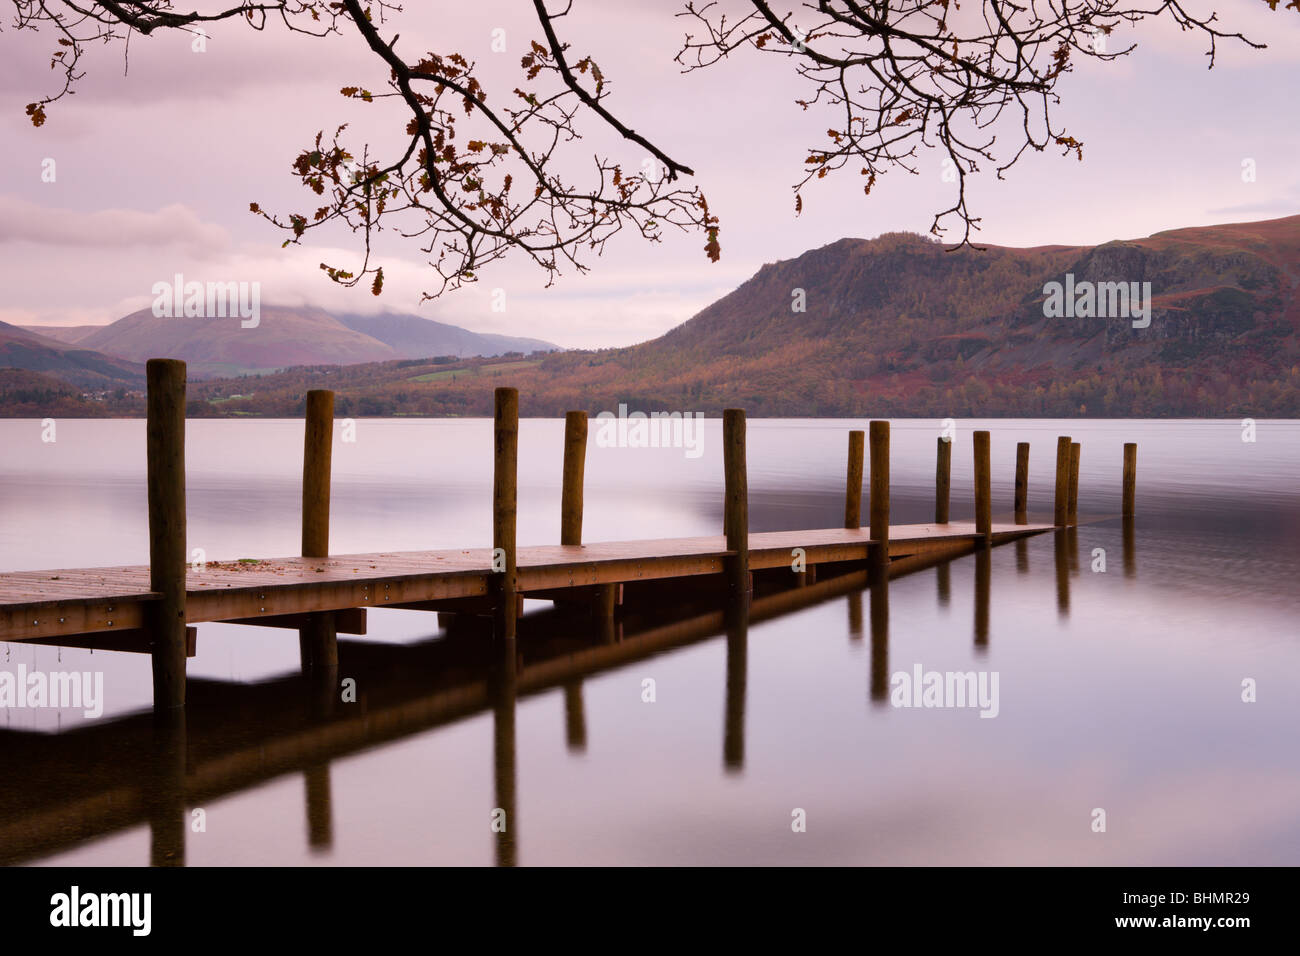 Brandelhow jetty on Derwent Water, Lake District National Park, Cumbria, England, UK. Autumn (November) 2009 - Stock Image